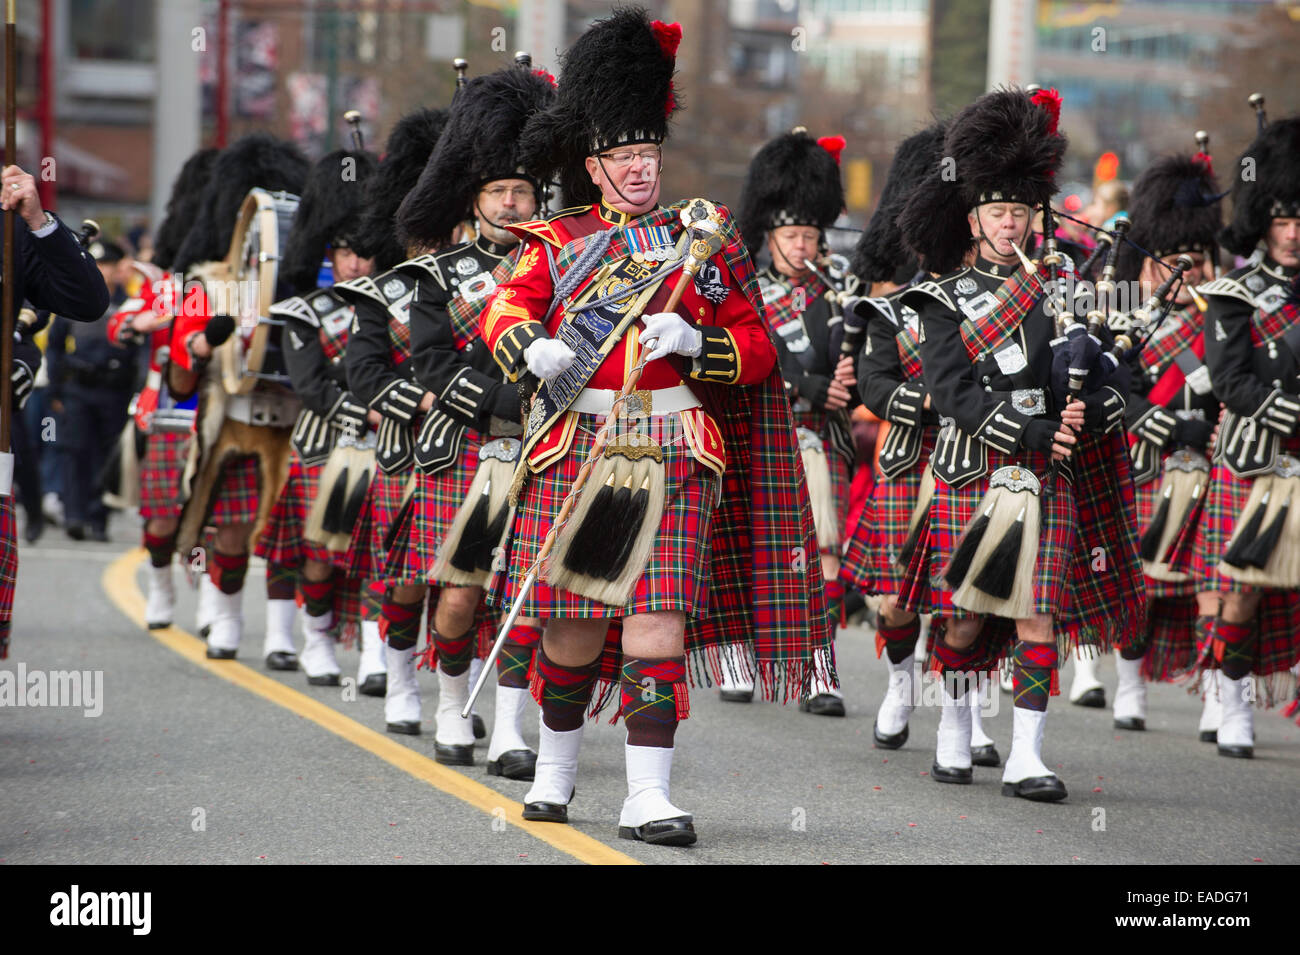 Events and Appearances | Philadelphia Police & Fire Pipes ... |Police Pipe Band Uniforms